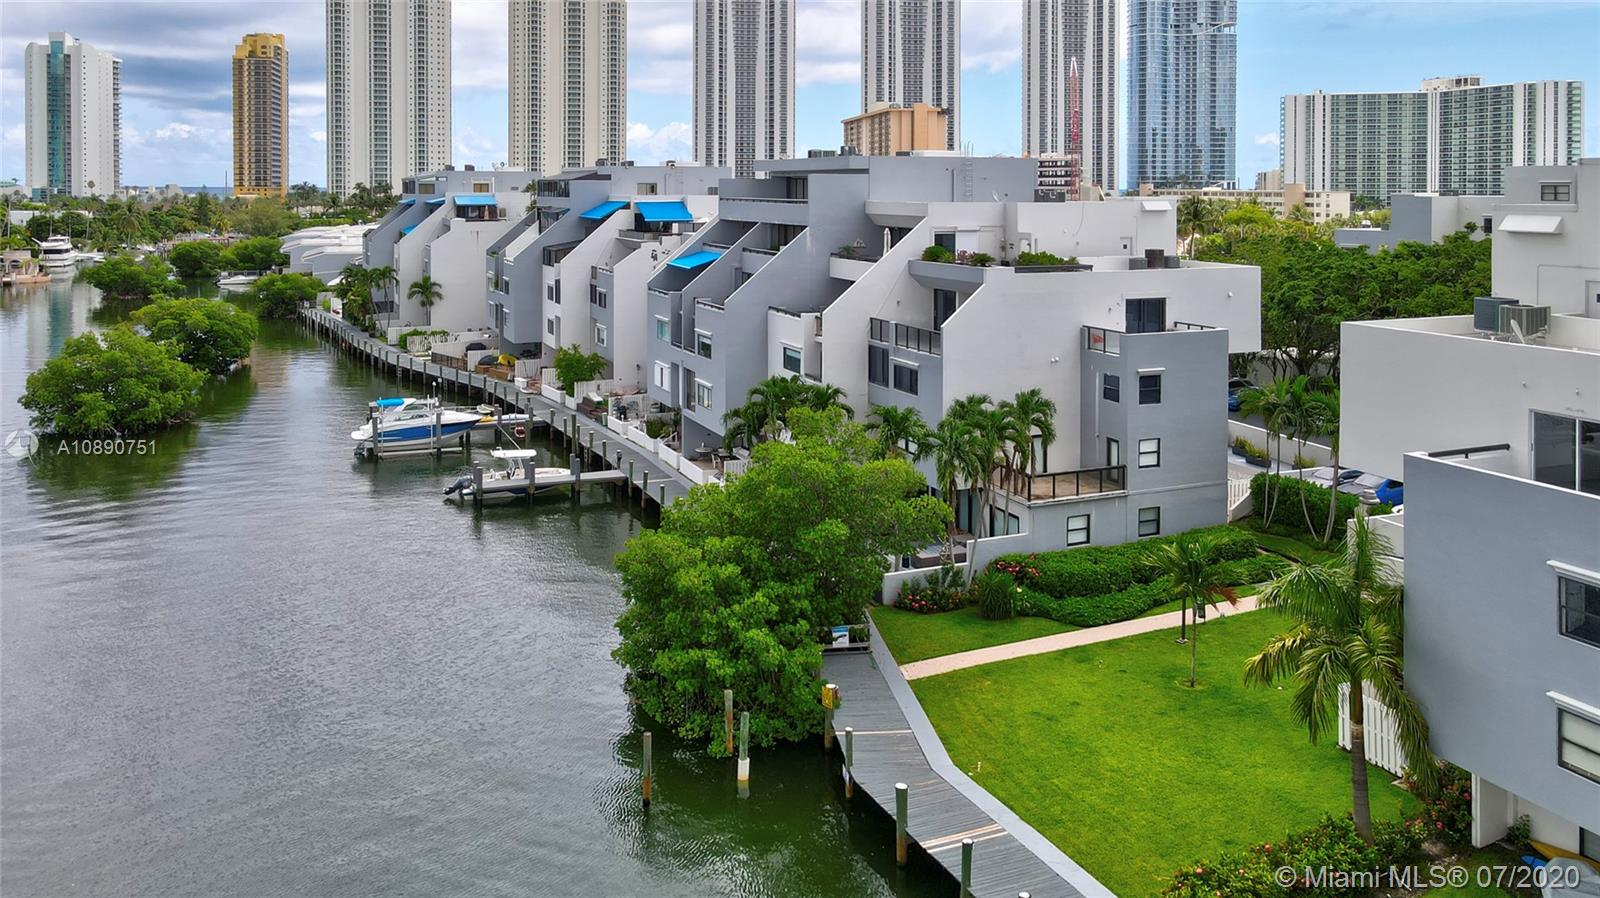 Photo of 425 Poinciana Island Drive #1444, Sunny Isles Beach, Florida, 33160 - Aerial view of Poinciana Island Yacht and Racquet Club with Sunny Isles Beach ocean towers in the background